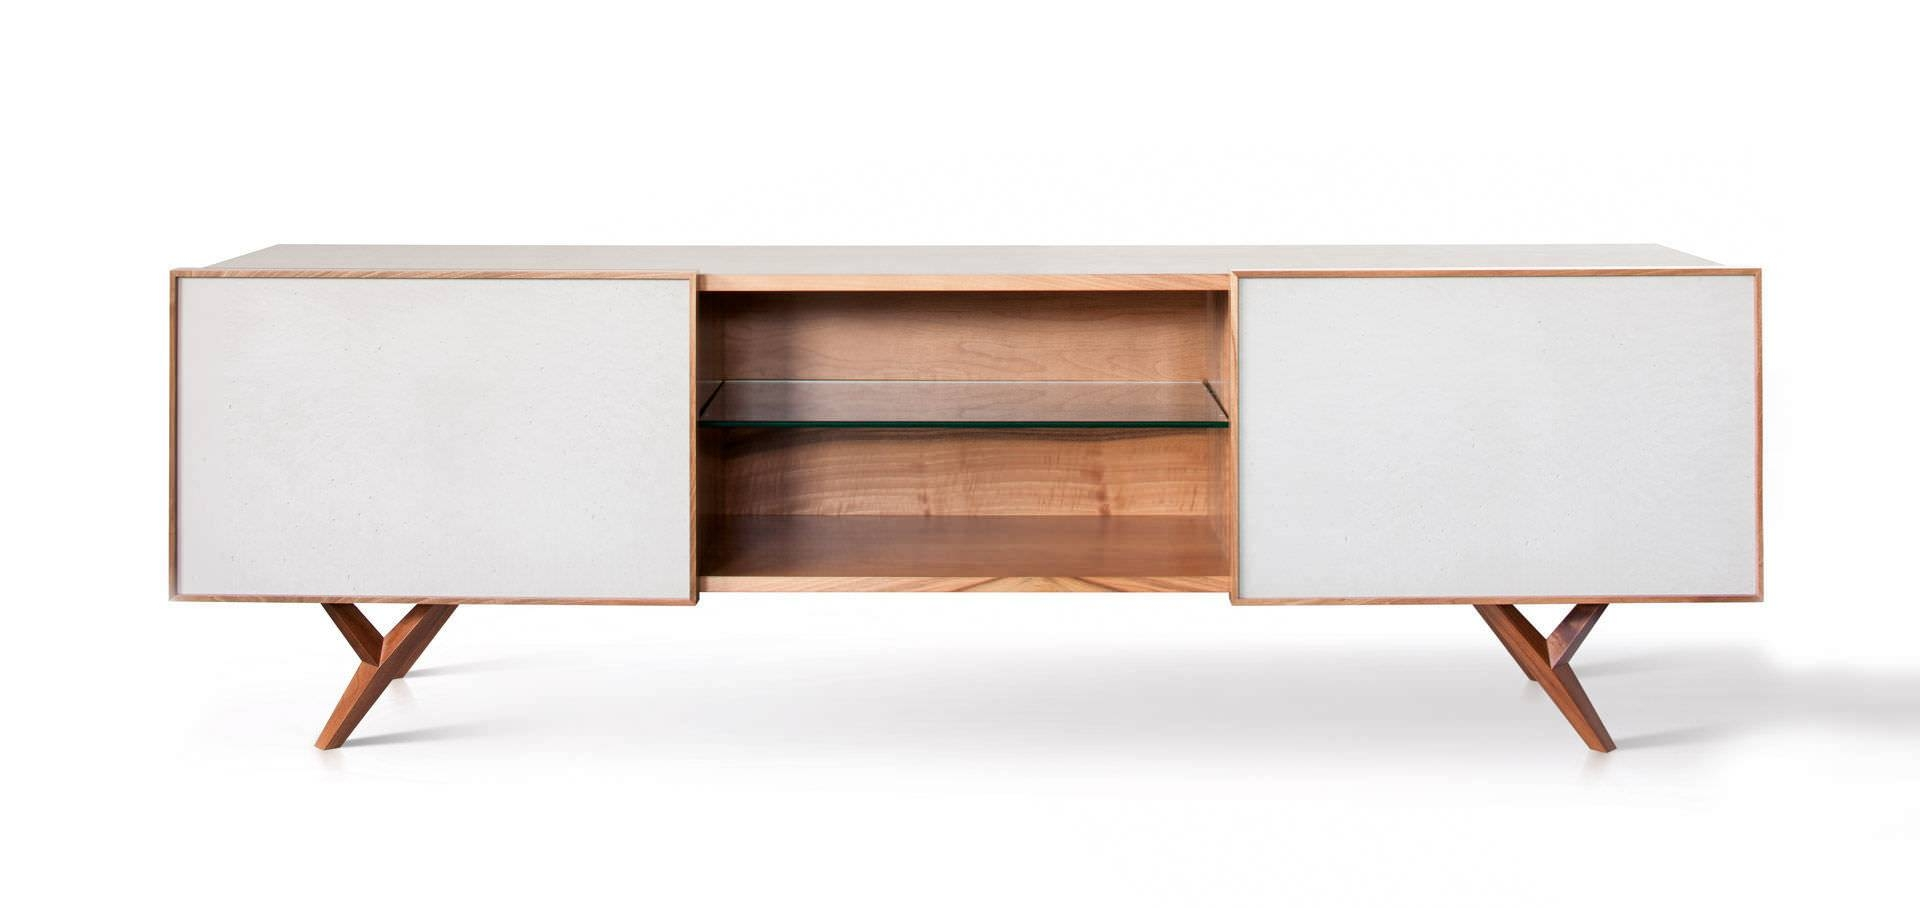 Furniture: Beautiful Profile Modern Sideboard For Living Room intended for White Modern Sideboards (Image 7 of 30)